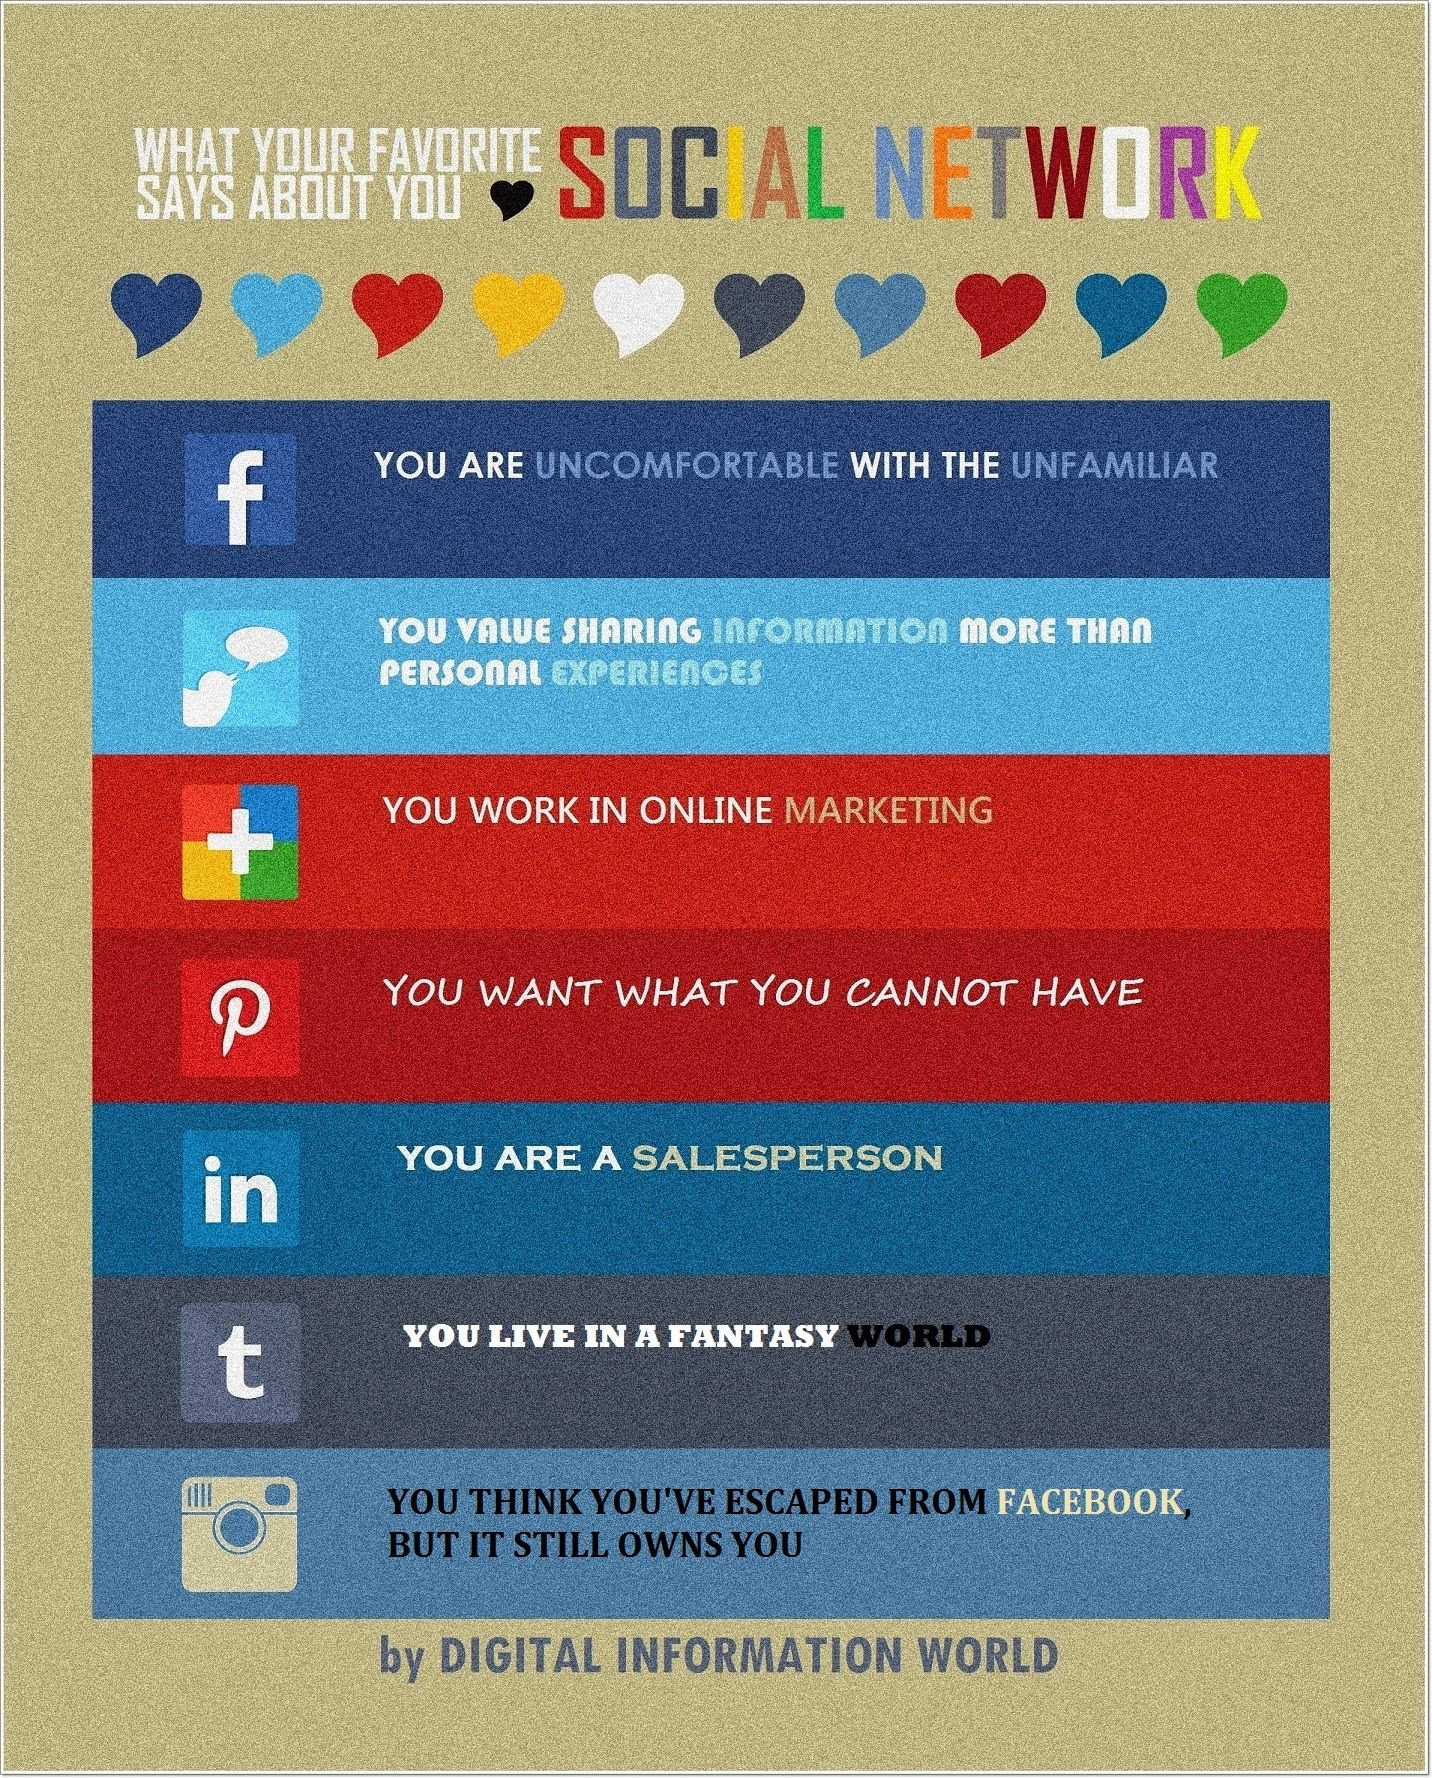 What Your Favorite Social Network Says About You [Infographic]